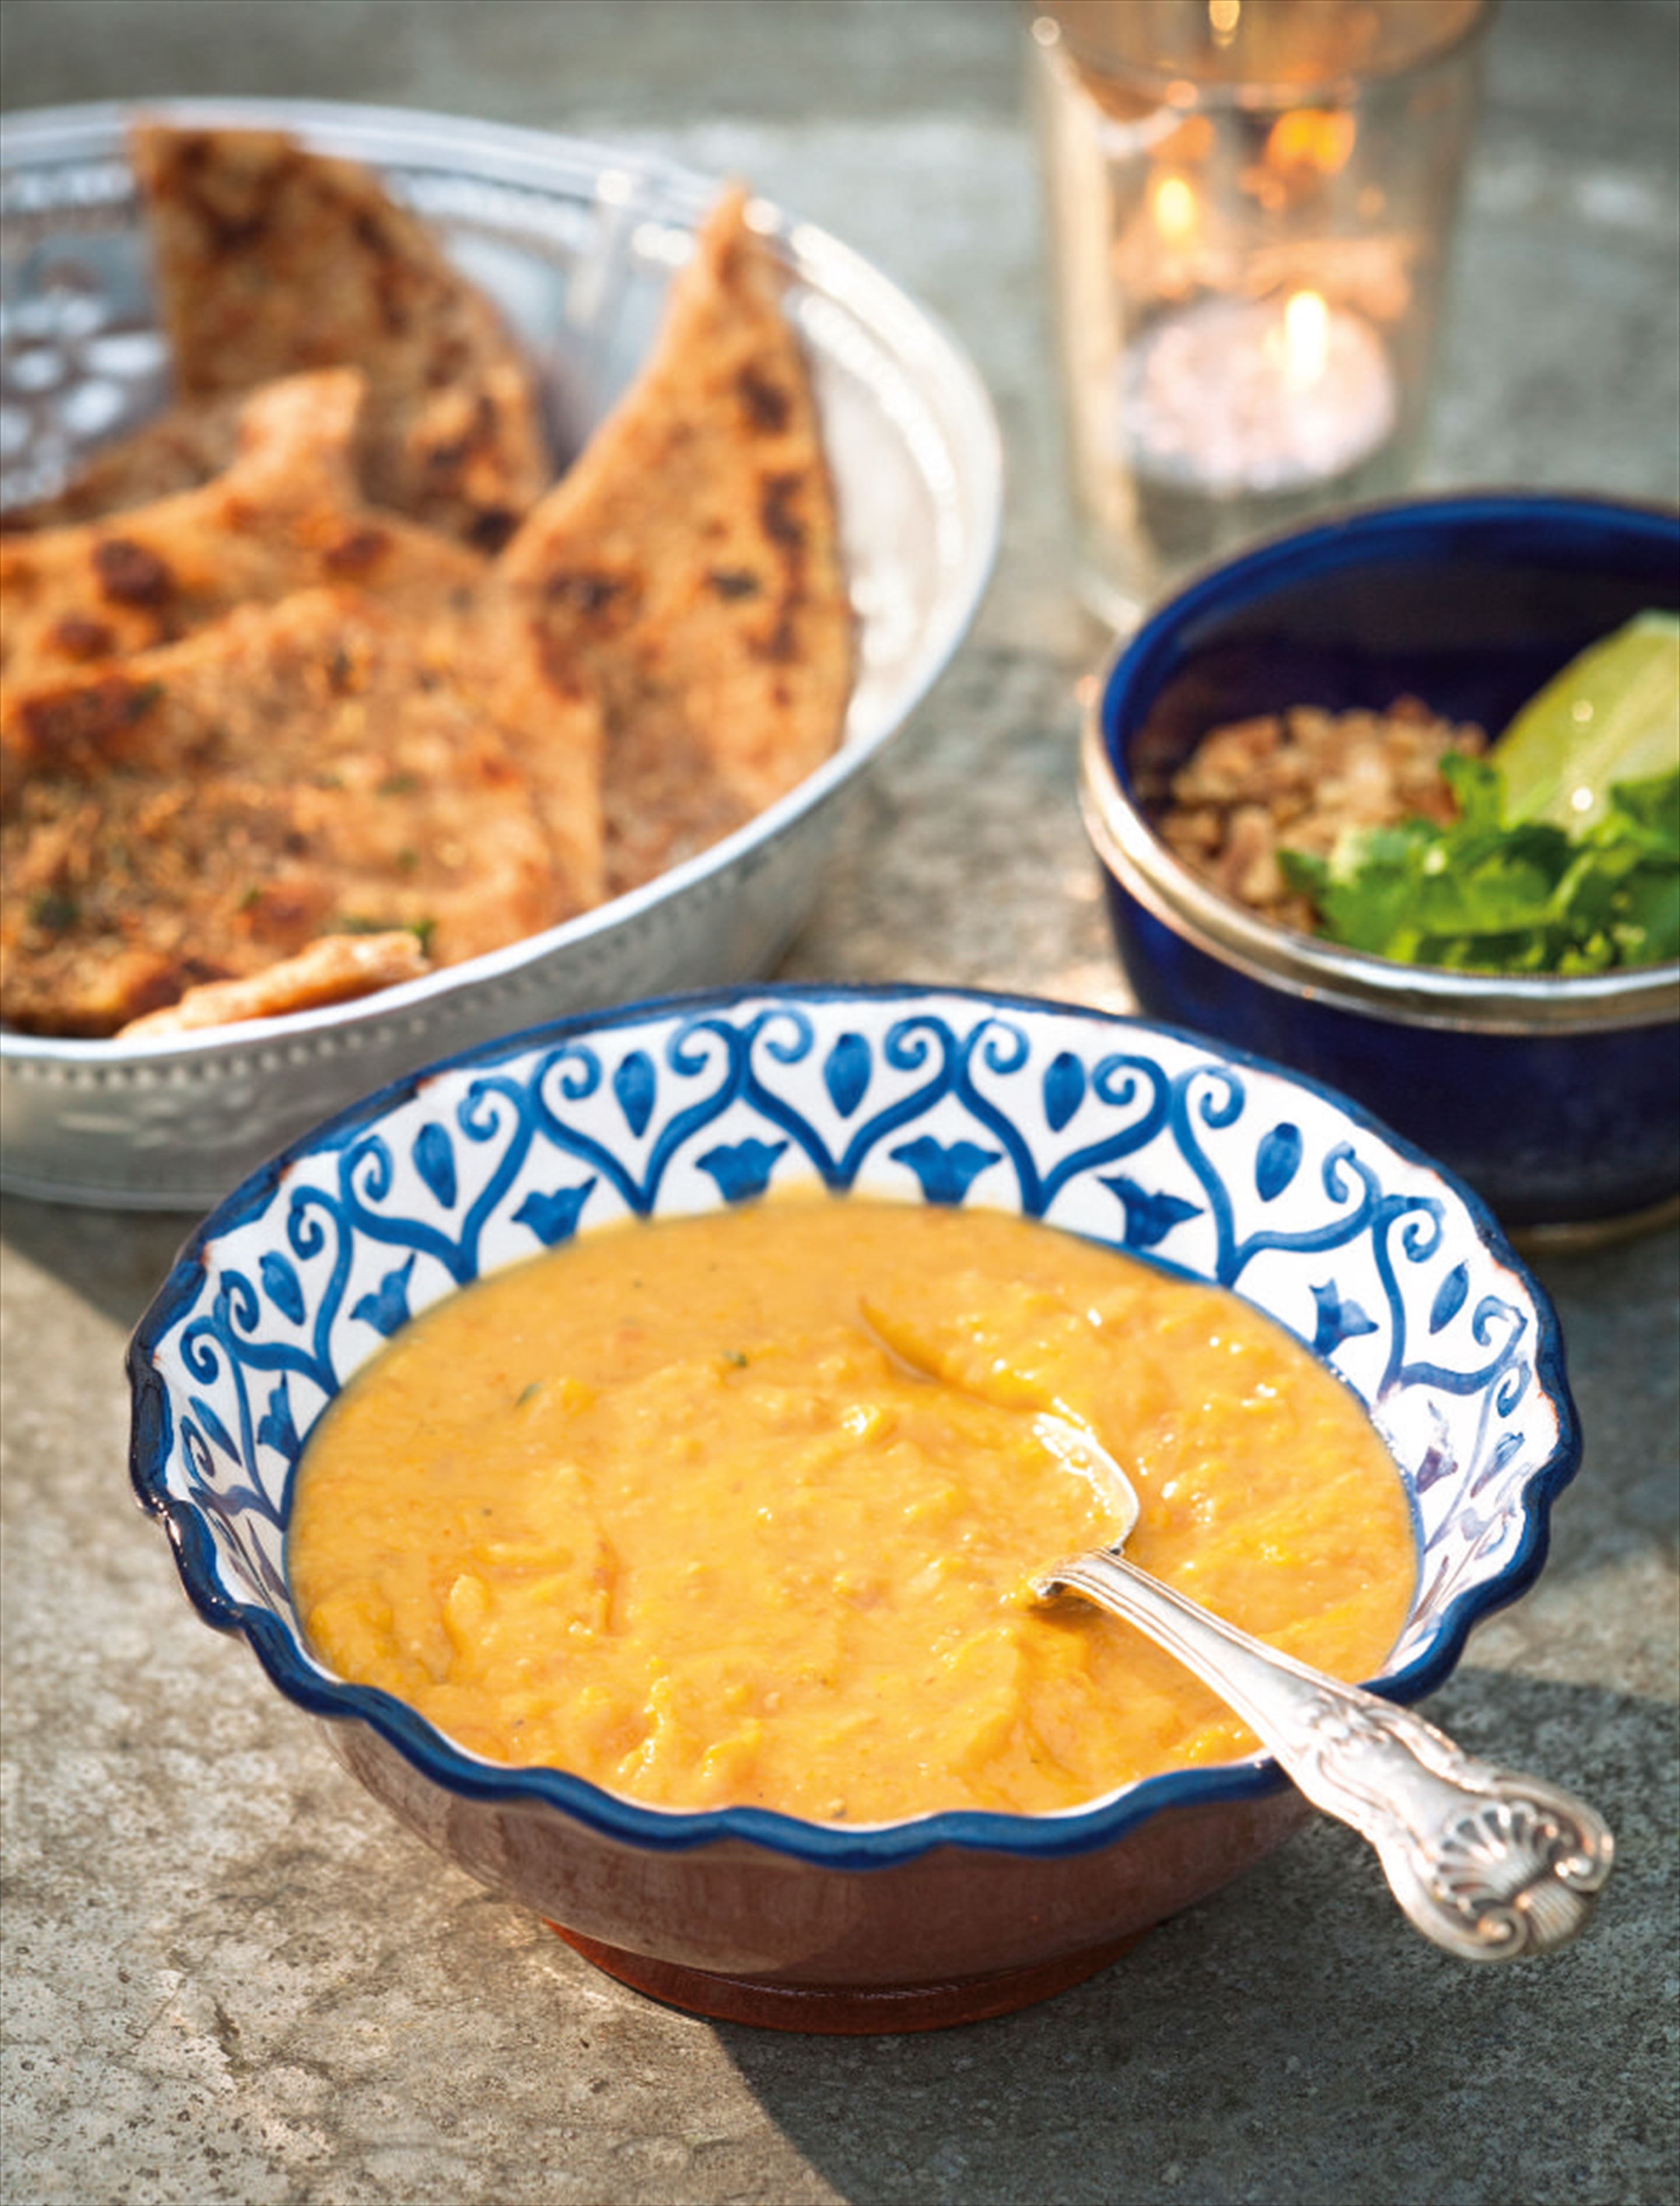 Sweet potato, carrot and peanut butter soup